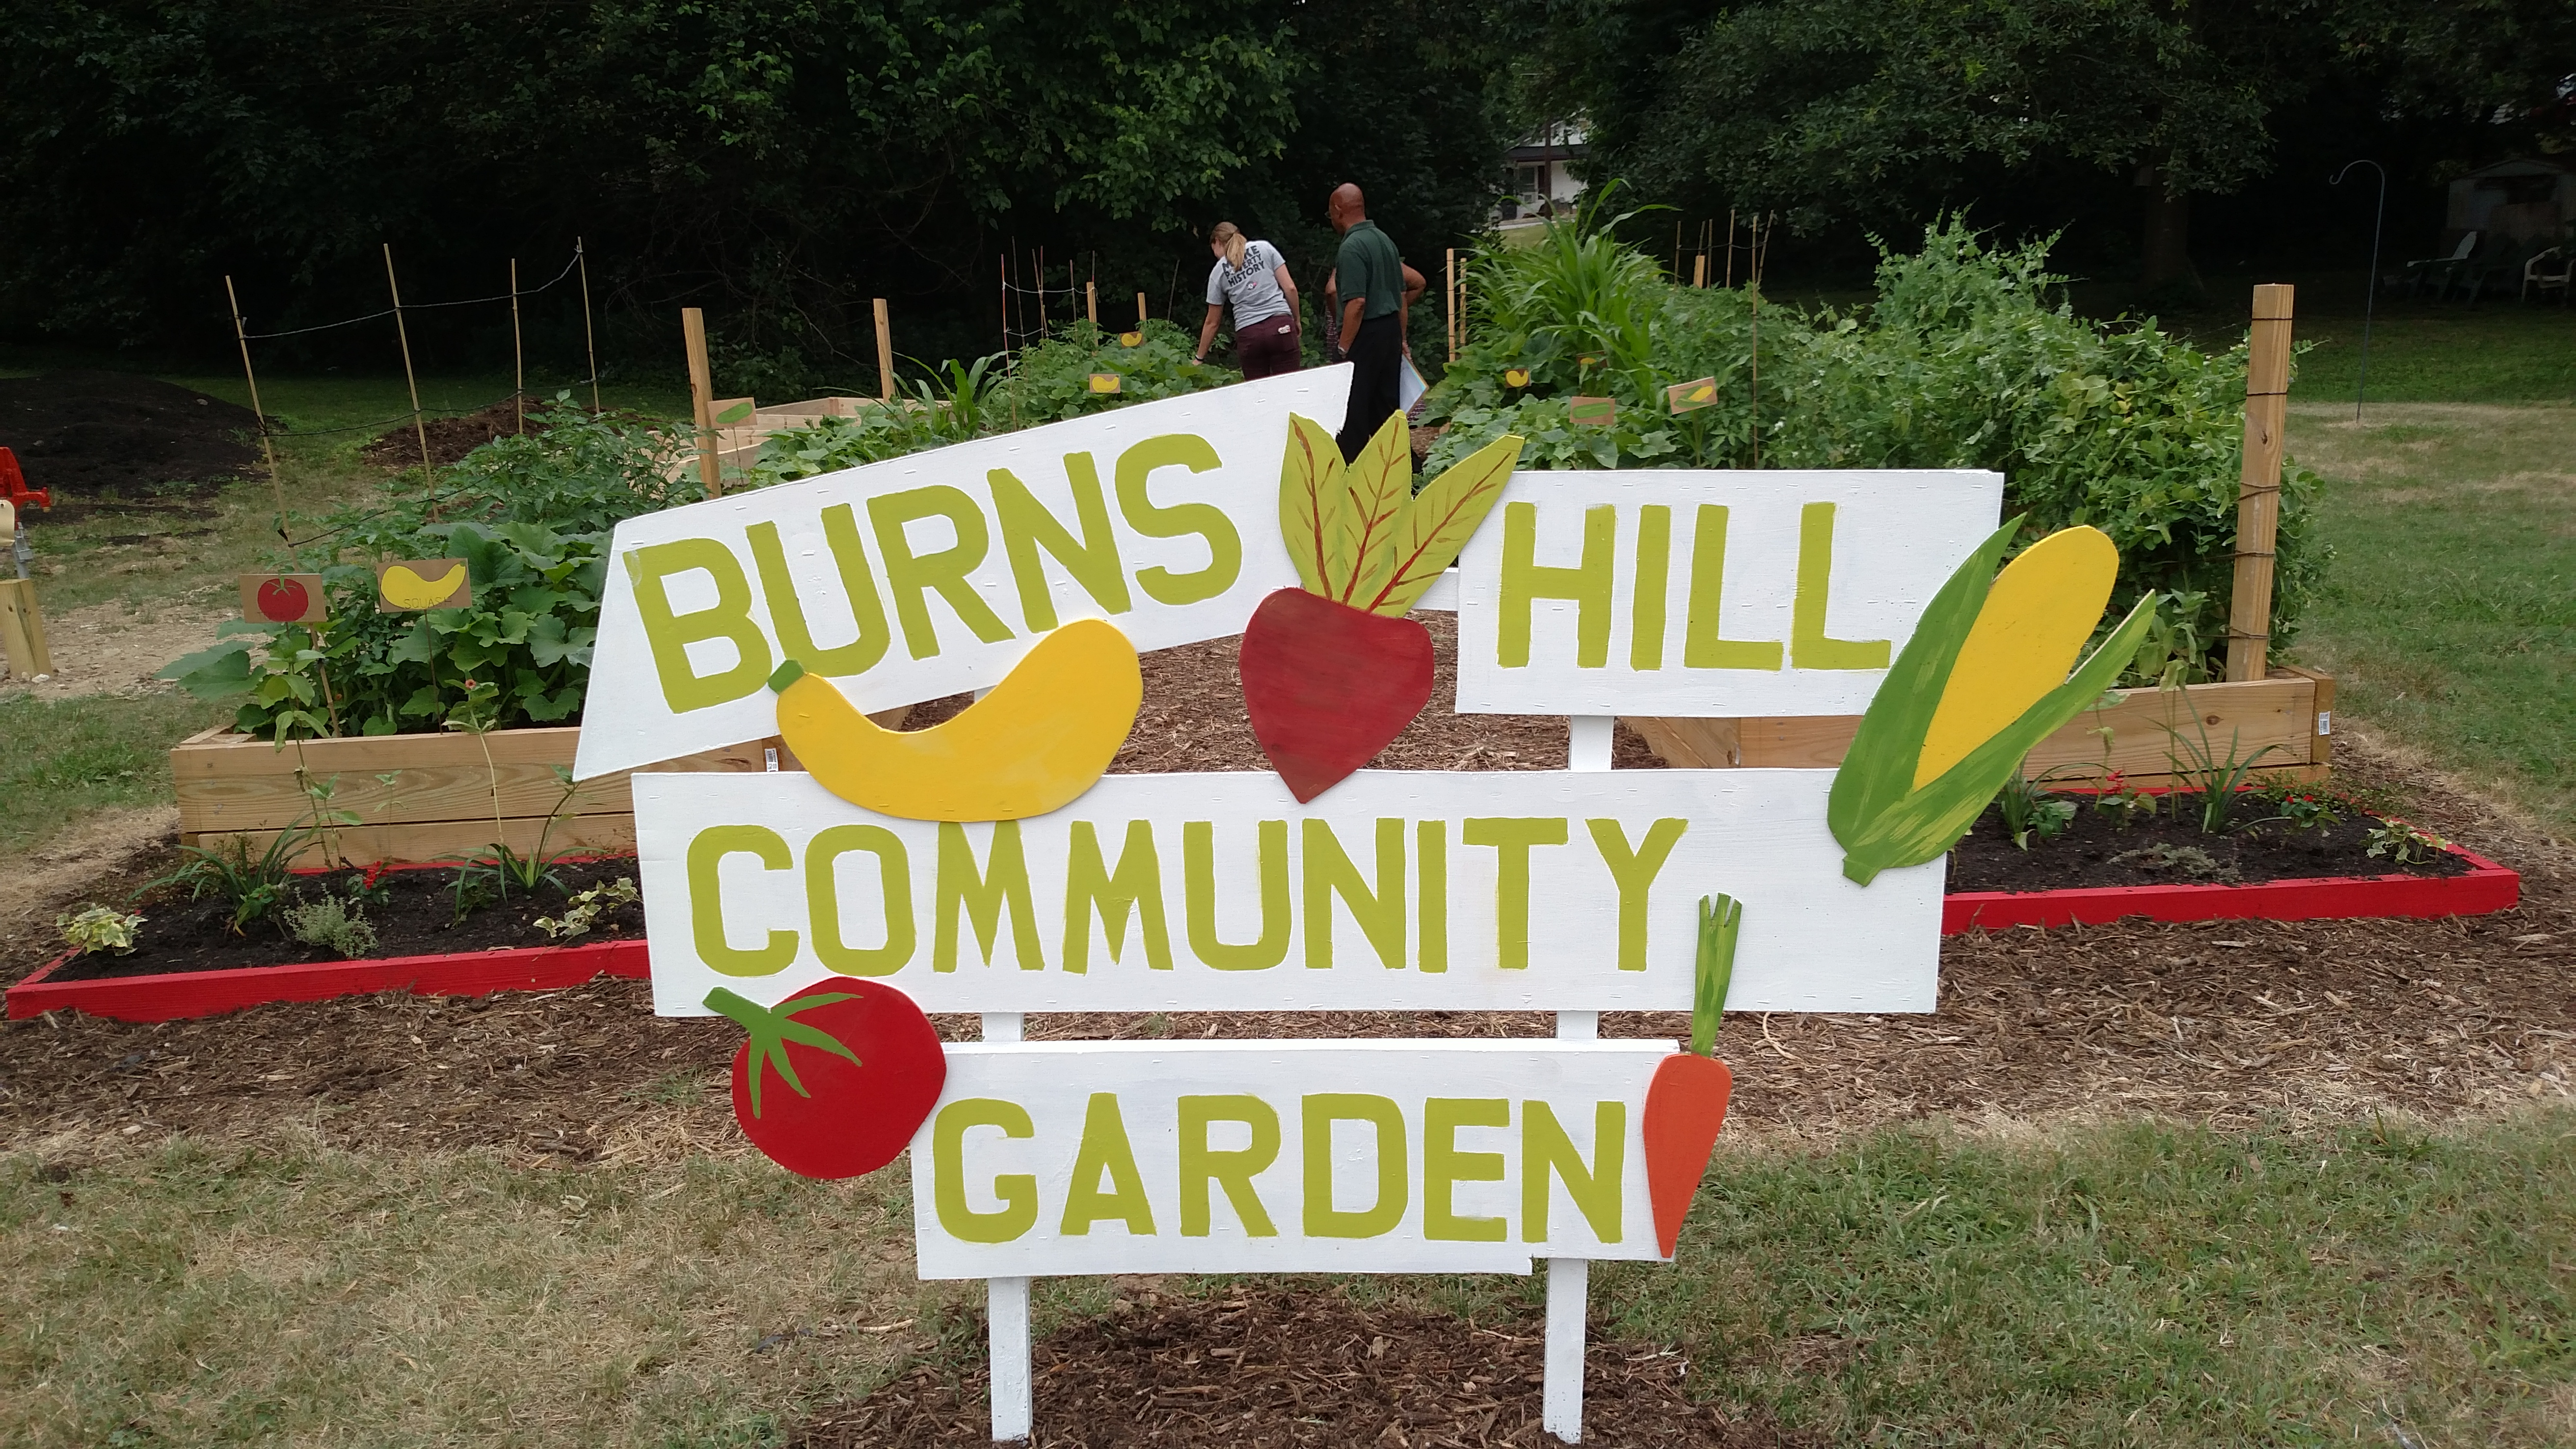 GHPFA has worked extensively to develop and provide resources to many community gardens across High Point.  They even successfully established a full-time Community Garden Coordinator under Cooperative Extension.